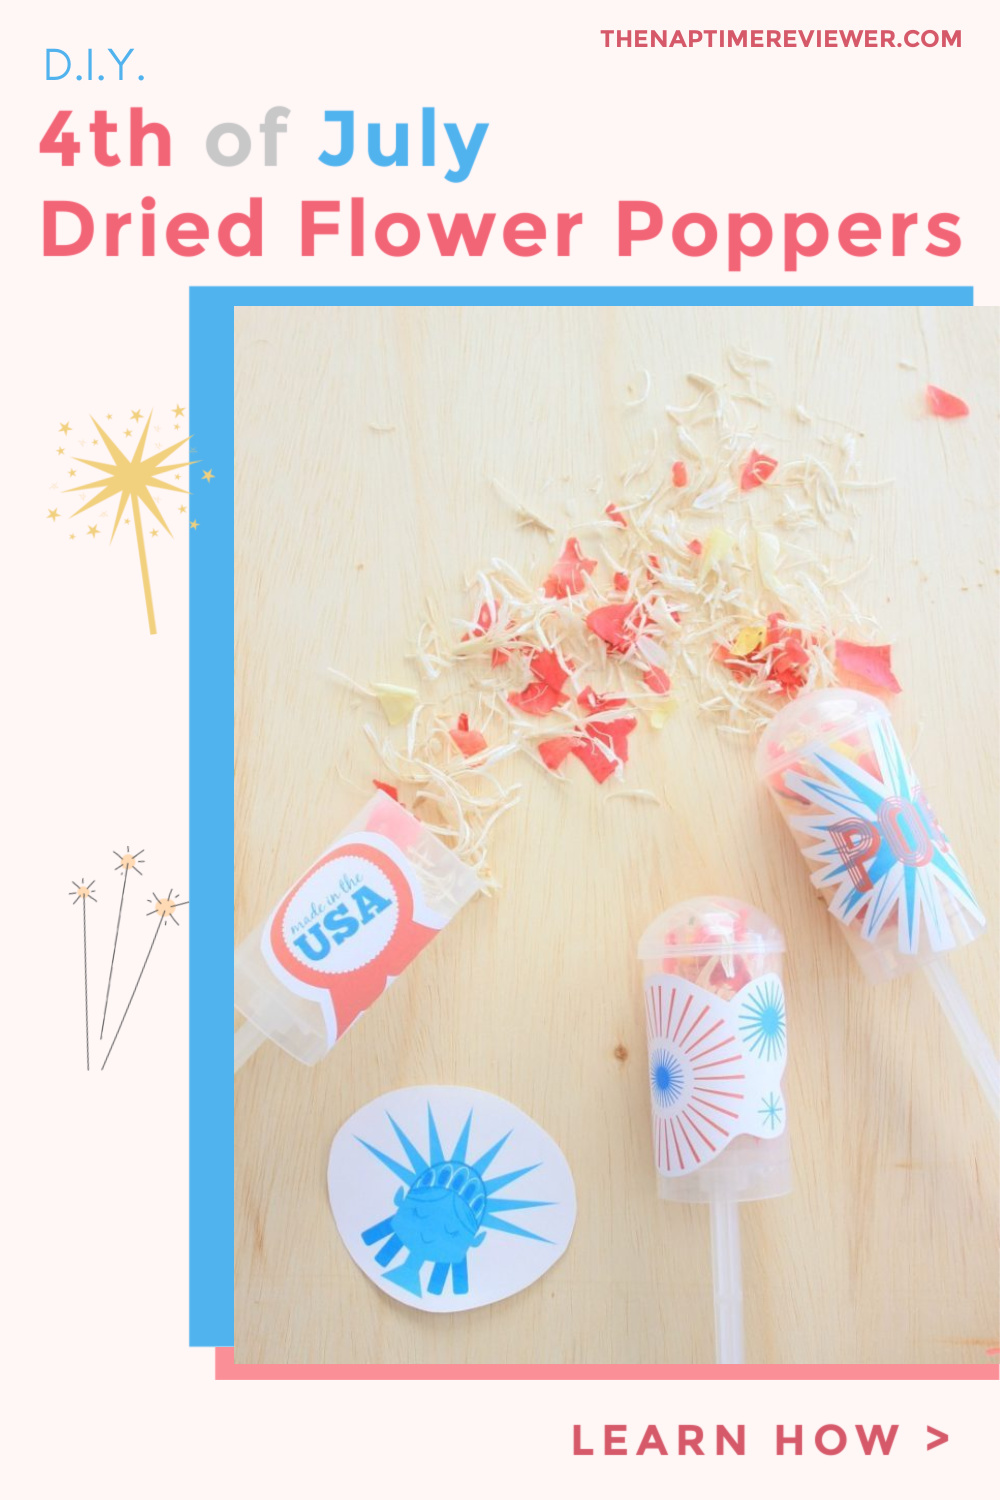 DIY Dried Flower Poppers for 4th of July